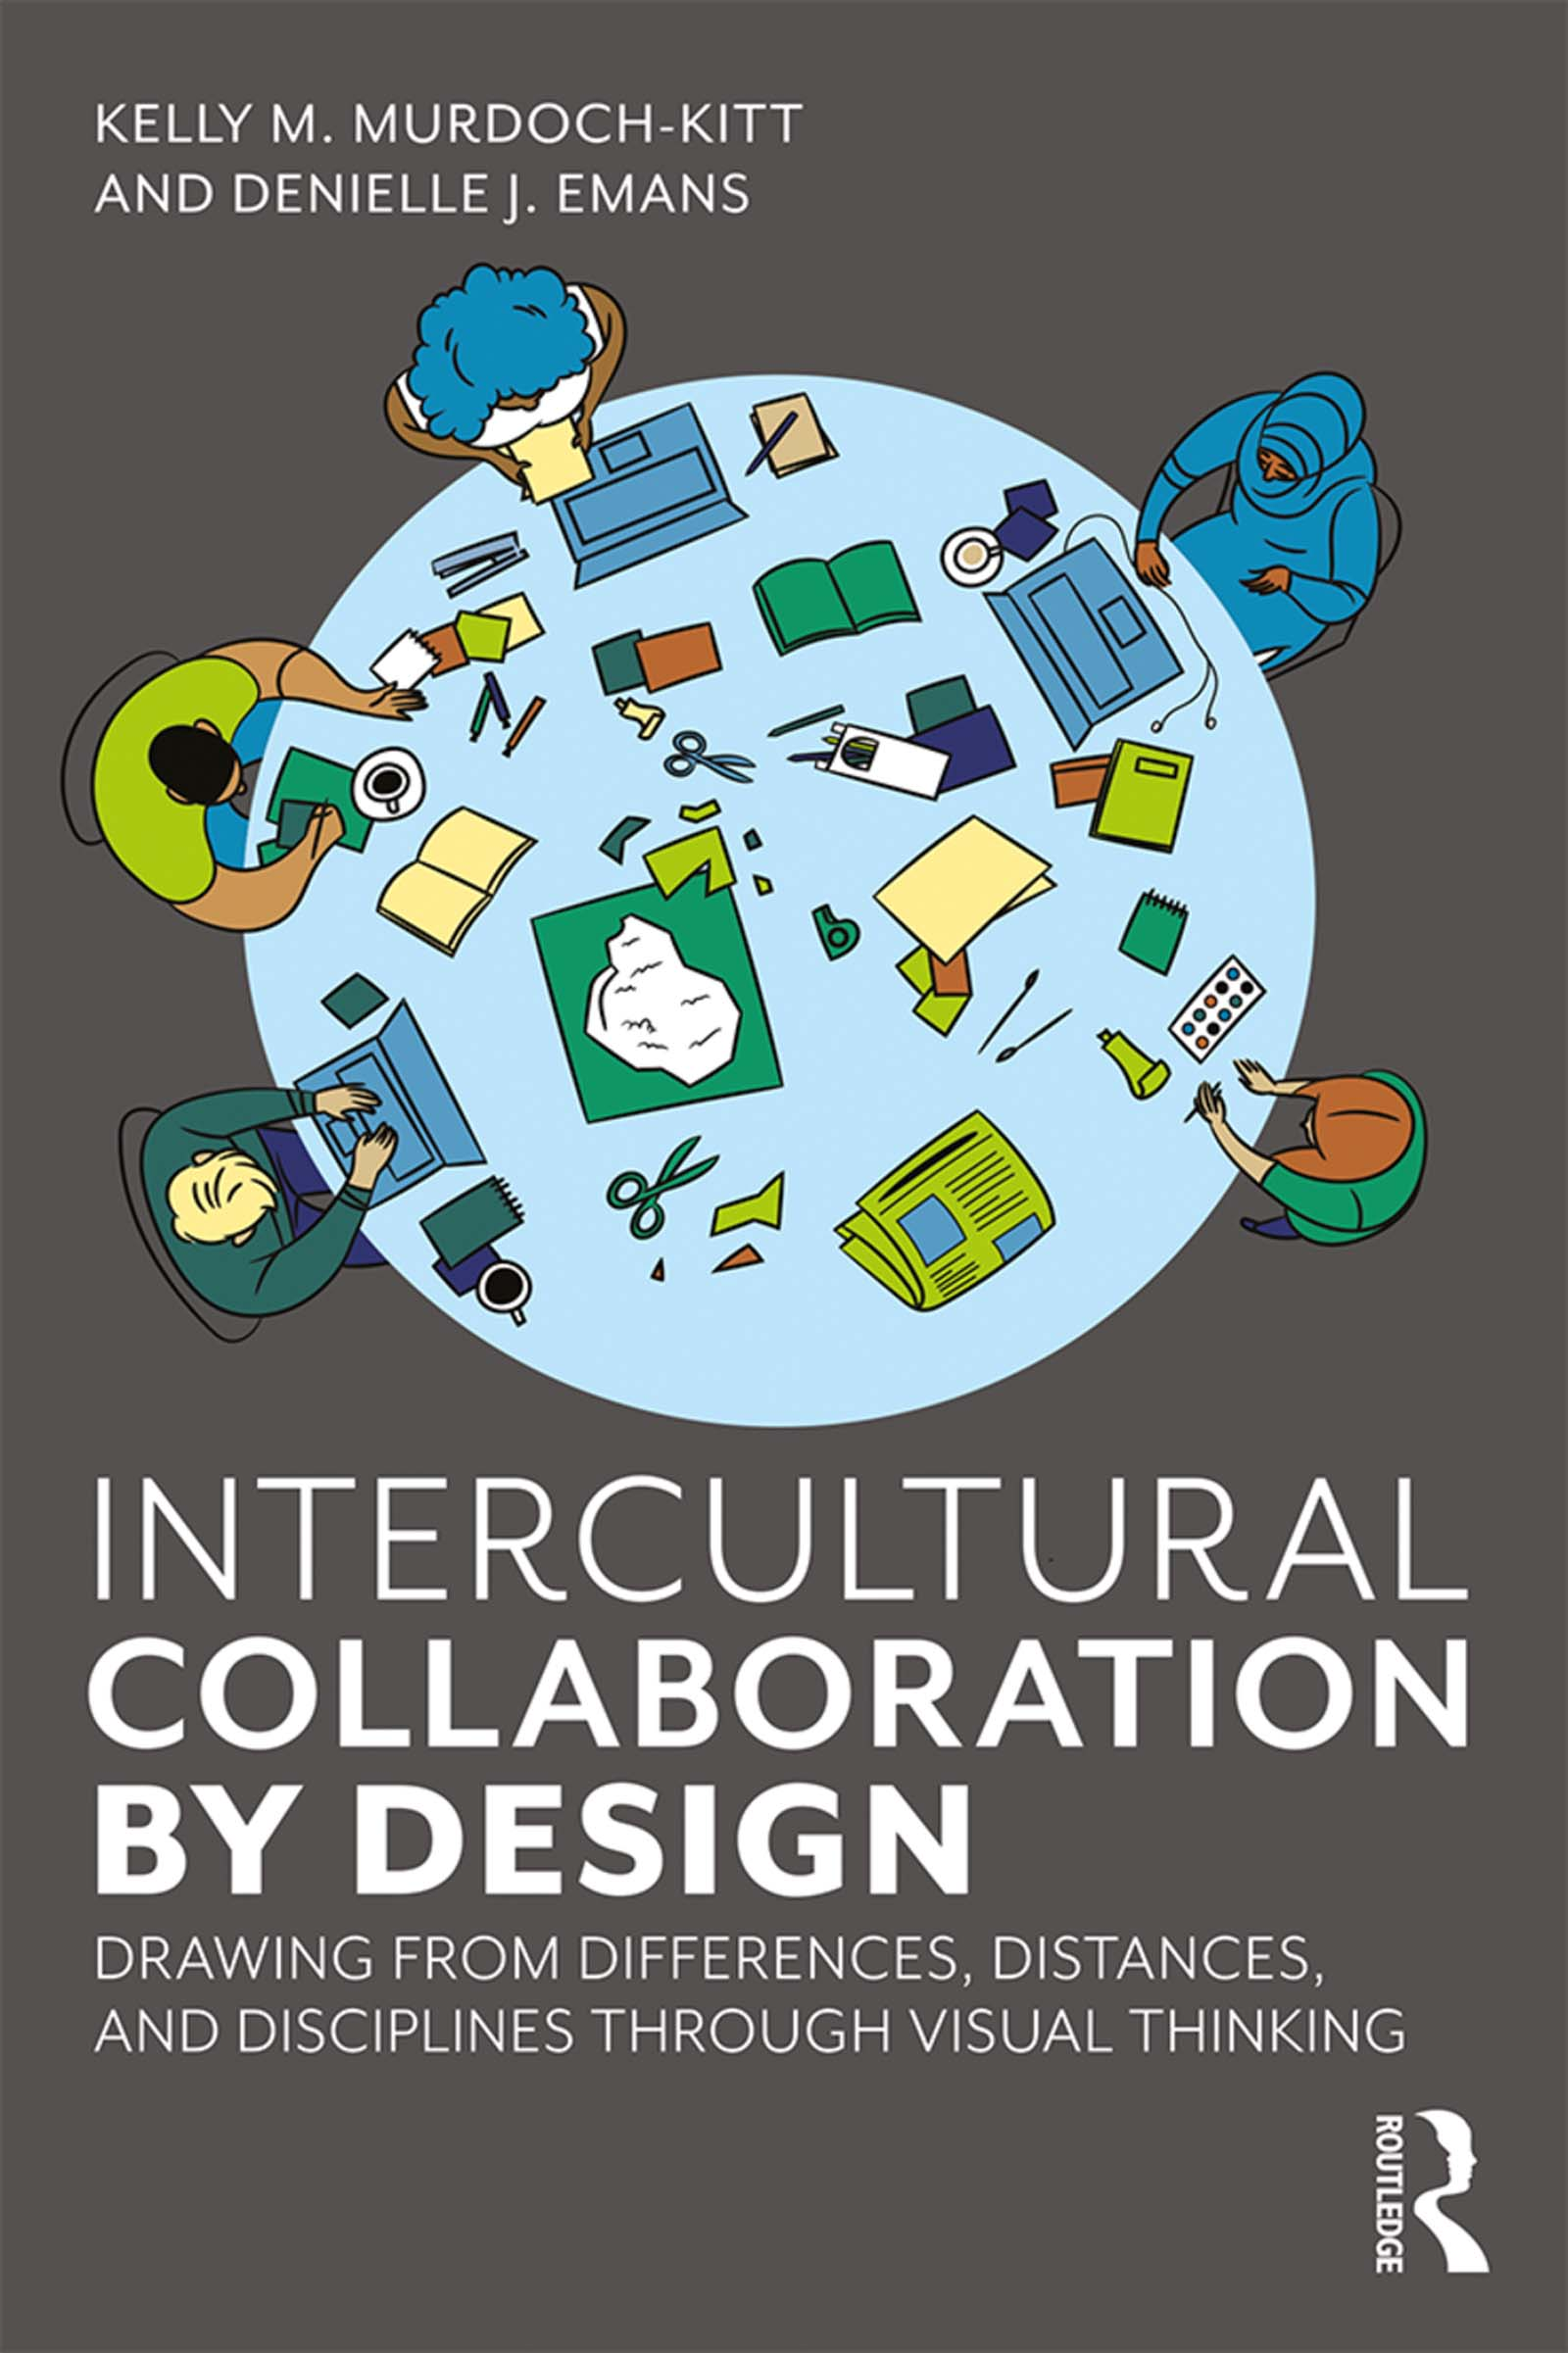 Intercultural Collaboration by Design: Drawing from Differences, Distances, and Disciplines Through Visual Thinking book cover